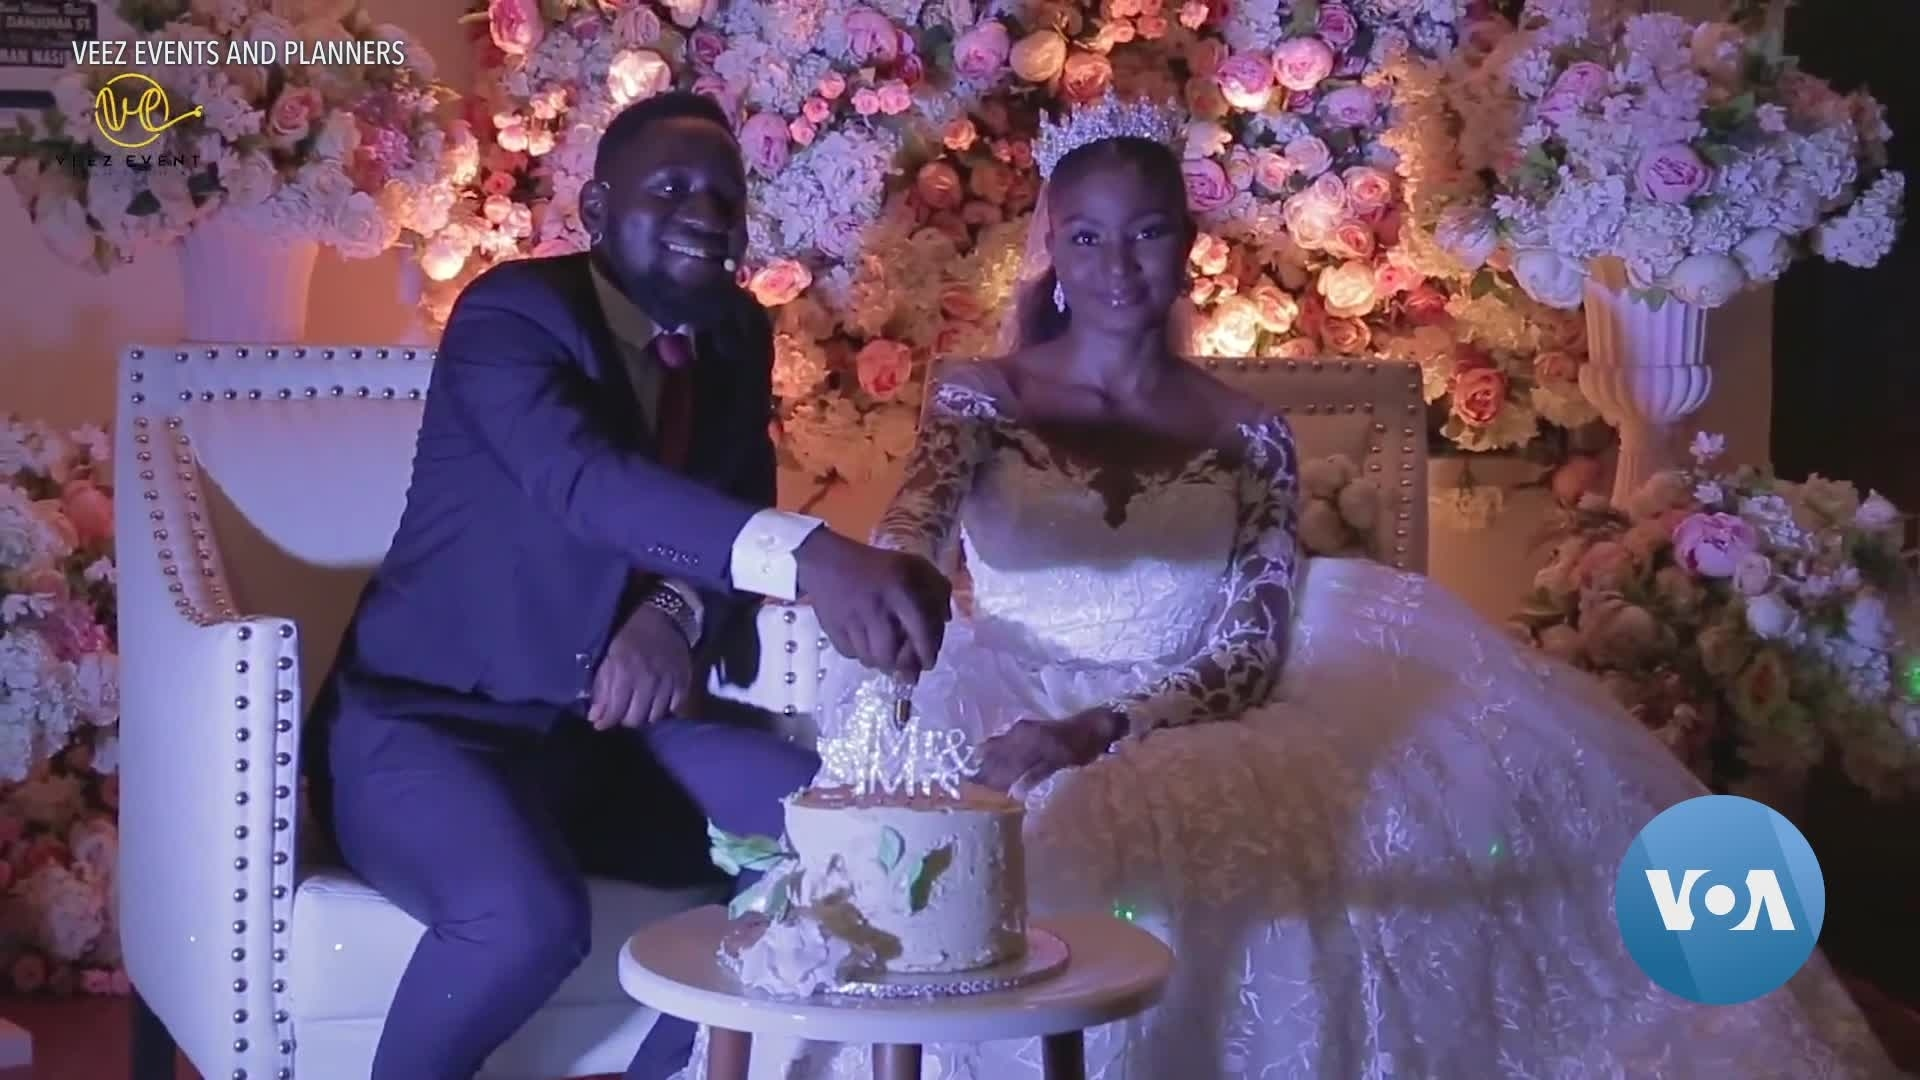 Nigeria's Fast-Growing Wedding Industry Struggles During Pandemic